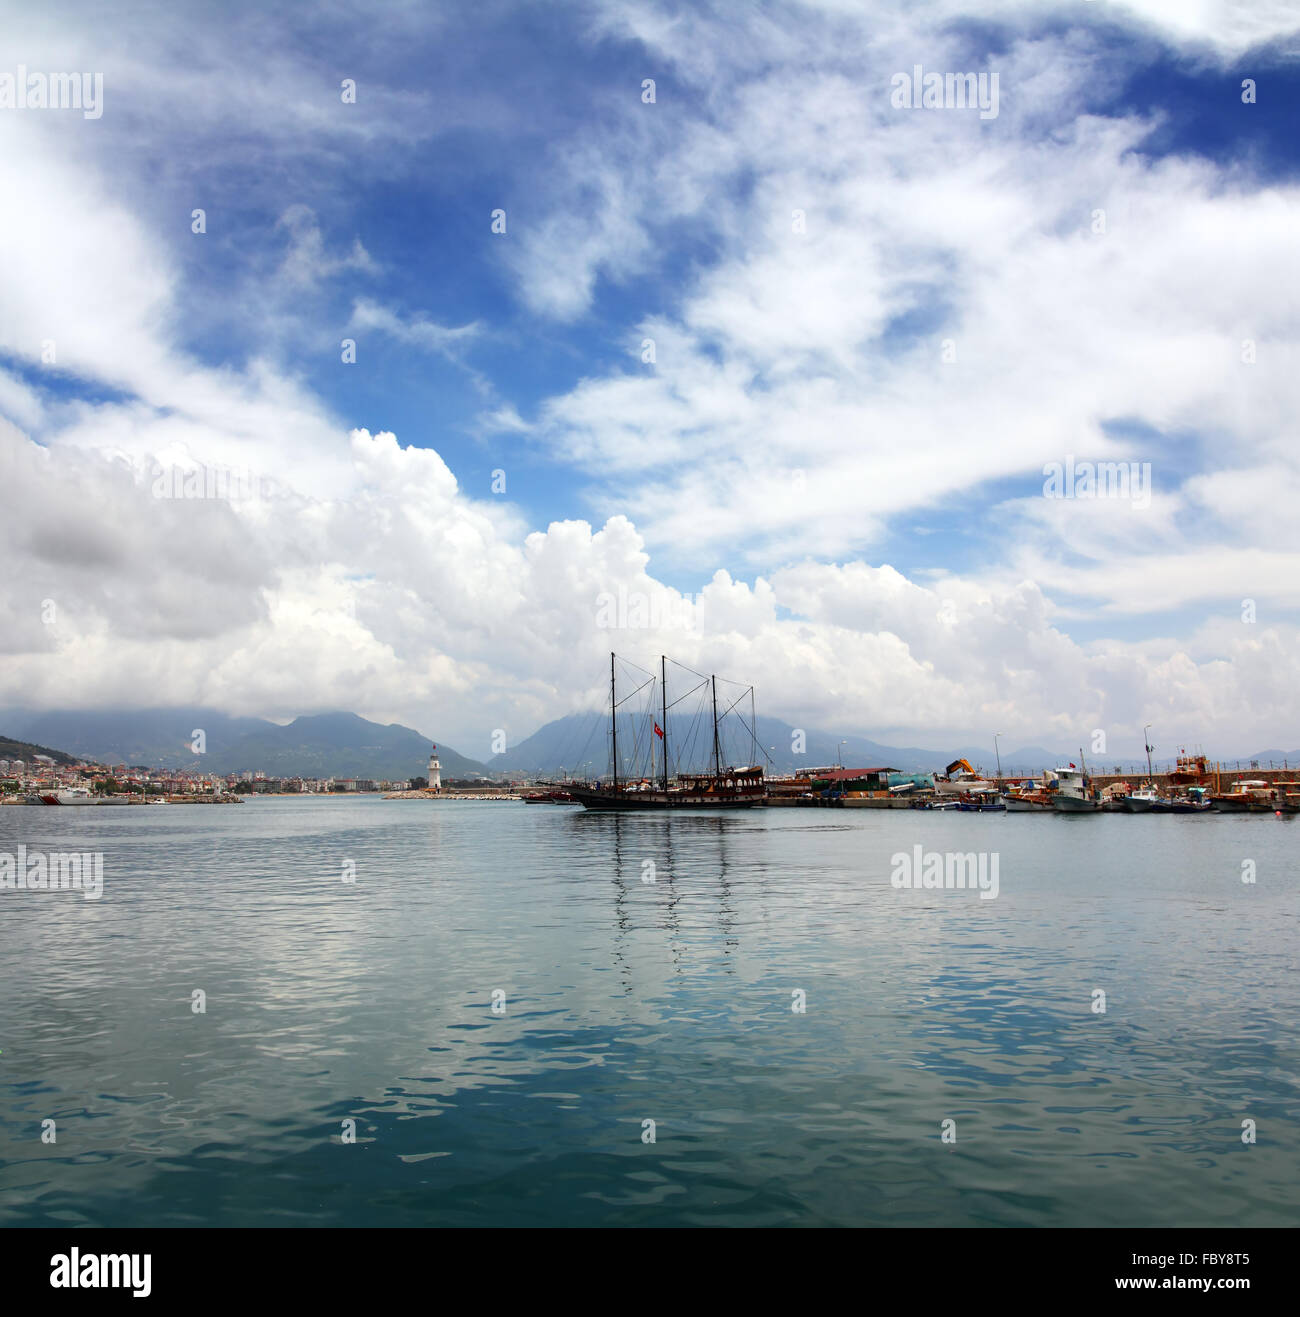 bay with boats and yachts in Alanya - Stock Image